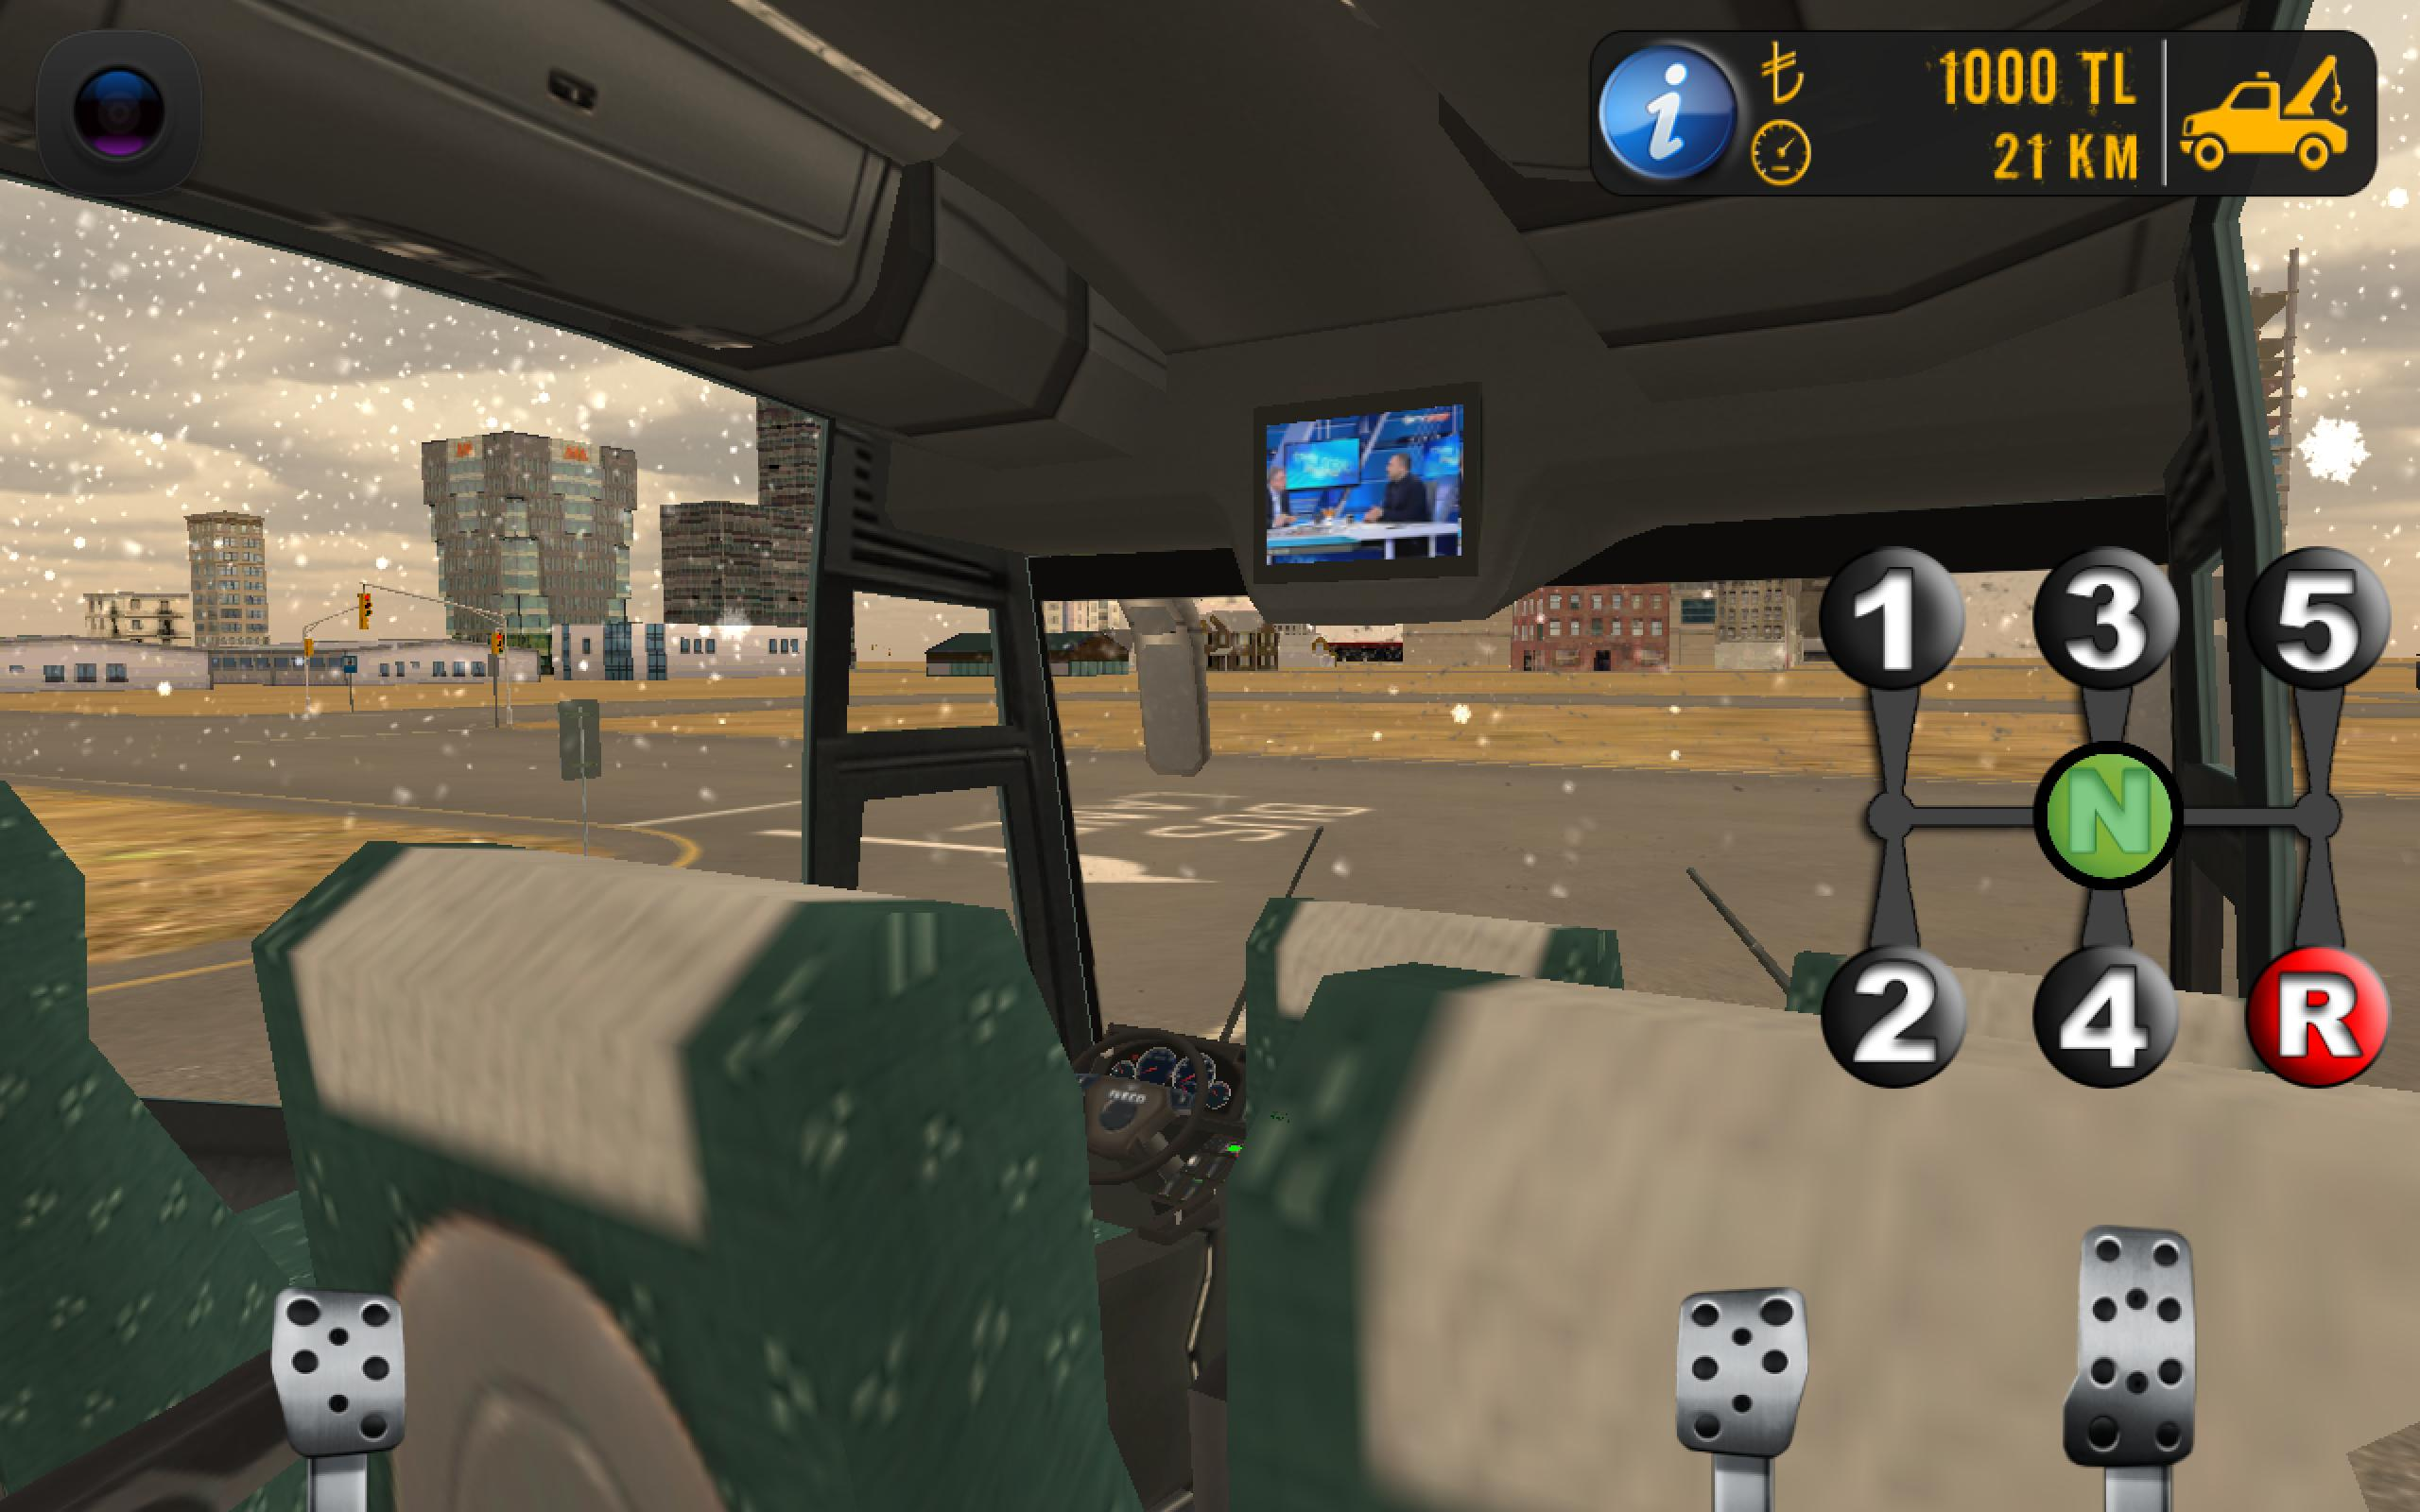 Anadolu Bus Simulator - Lite for Android - APK Download